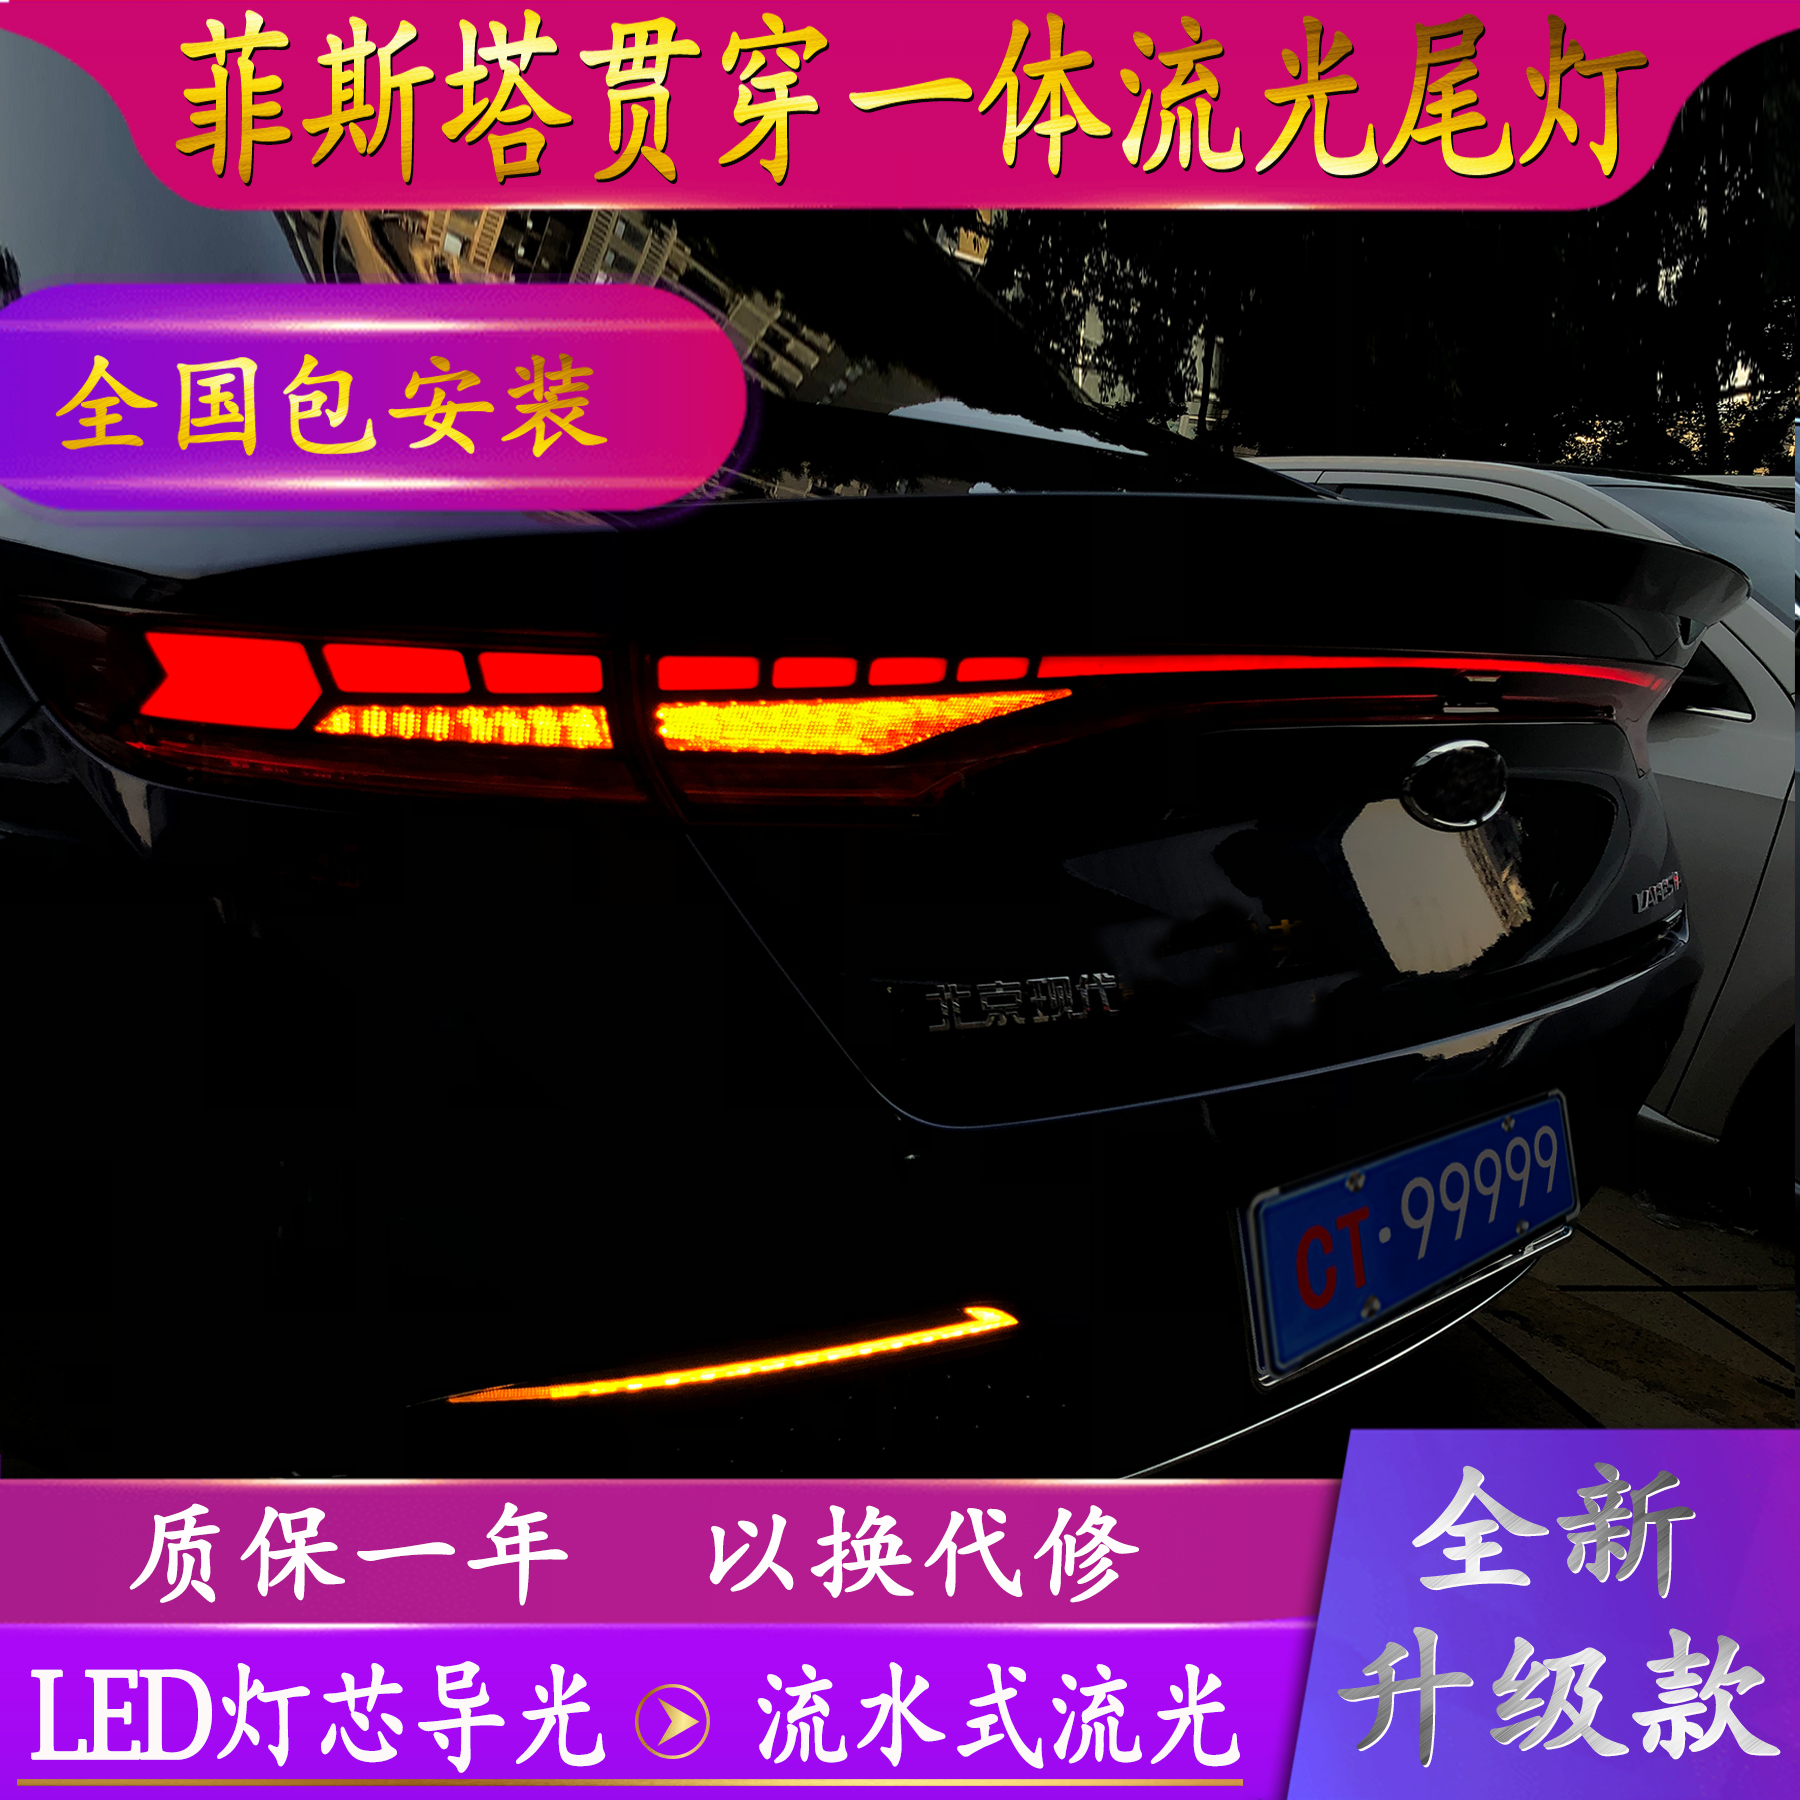 Modern festa tail lamp assembly A7 through integrated LED tail lamp water steering streamer rear bar lamp refitting